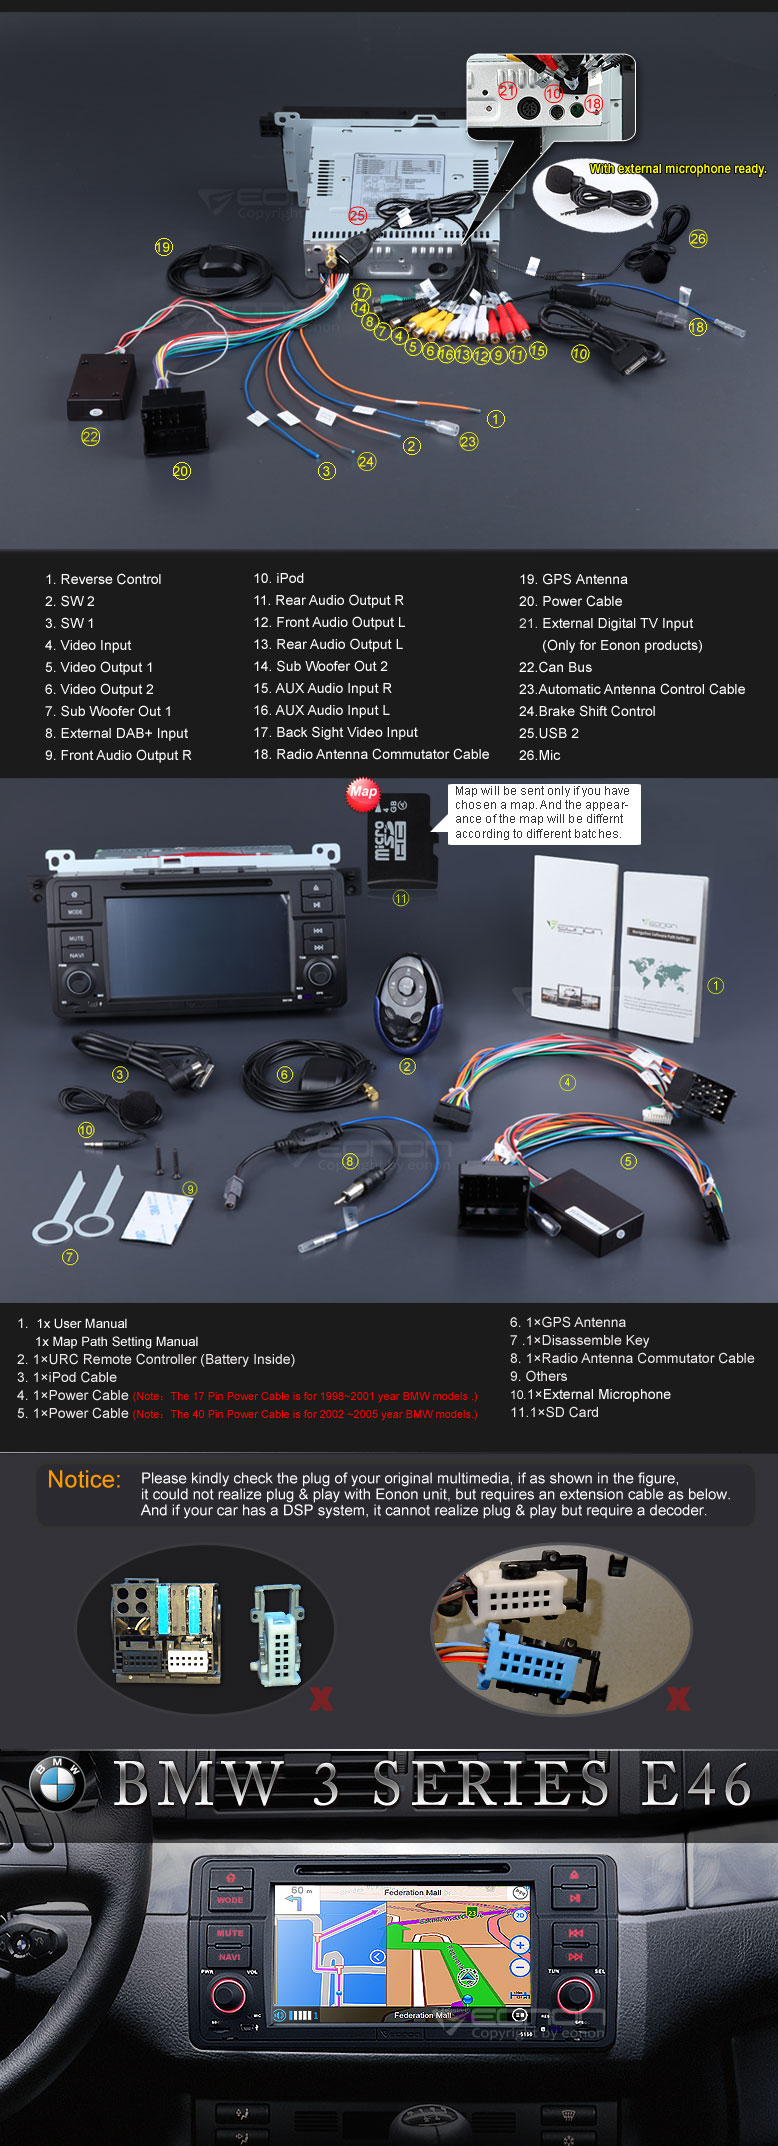 D5150 05G eonon d5150 car dvd specific car dvd car dvd for bmw e46 eonon d5150 wiring diagram at bayanpartner.co